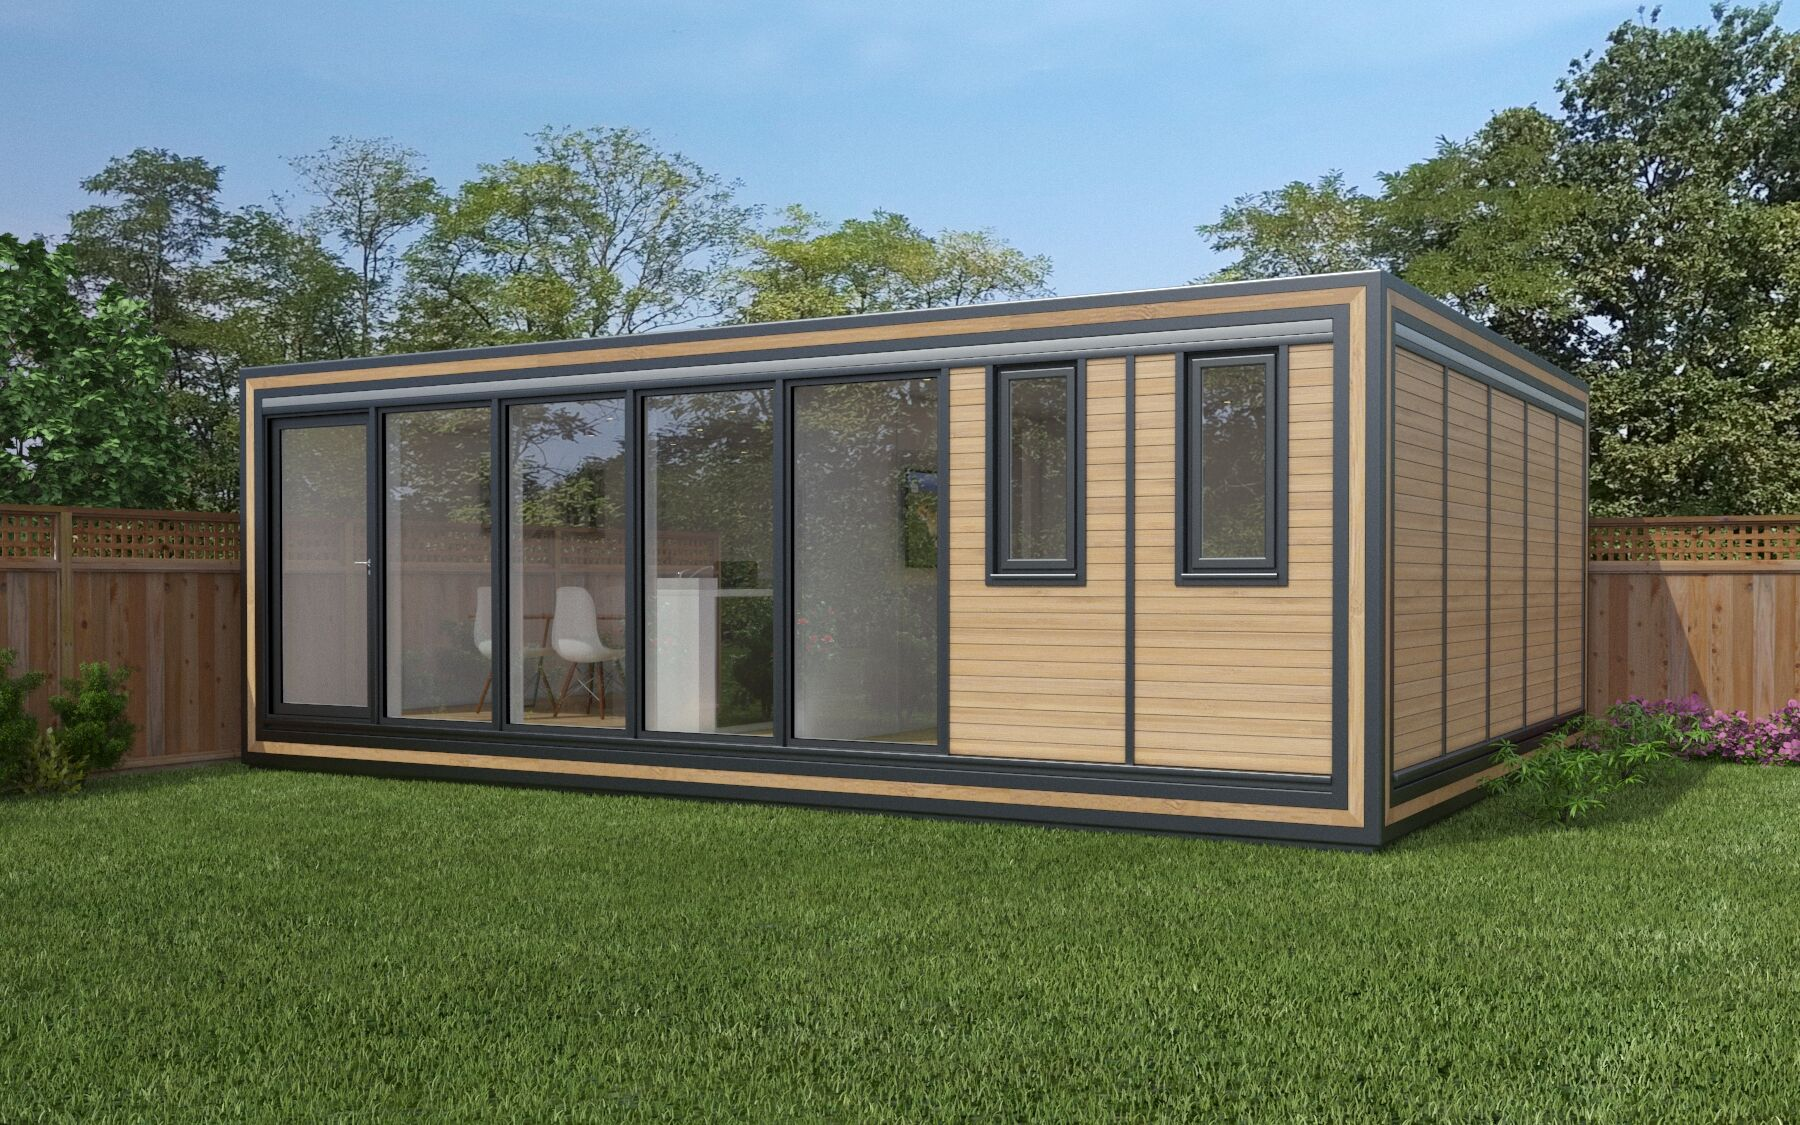 The Zedbox 750 offers a comfortable garden house for four, with substantial interior measurements of 7.5m x 5.3m. Contemporary granny annexes from just £53,000.